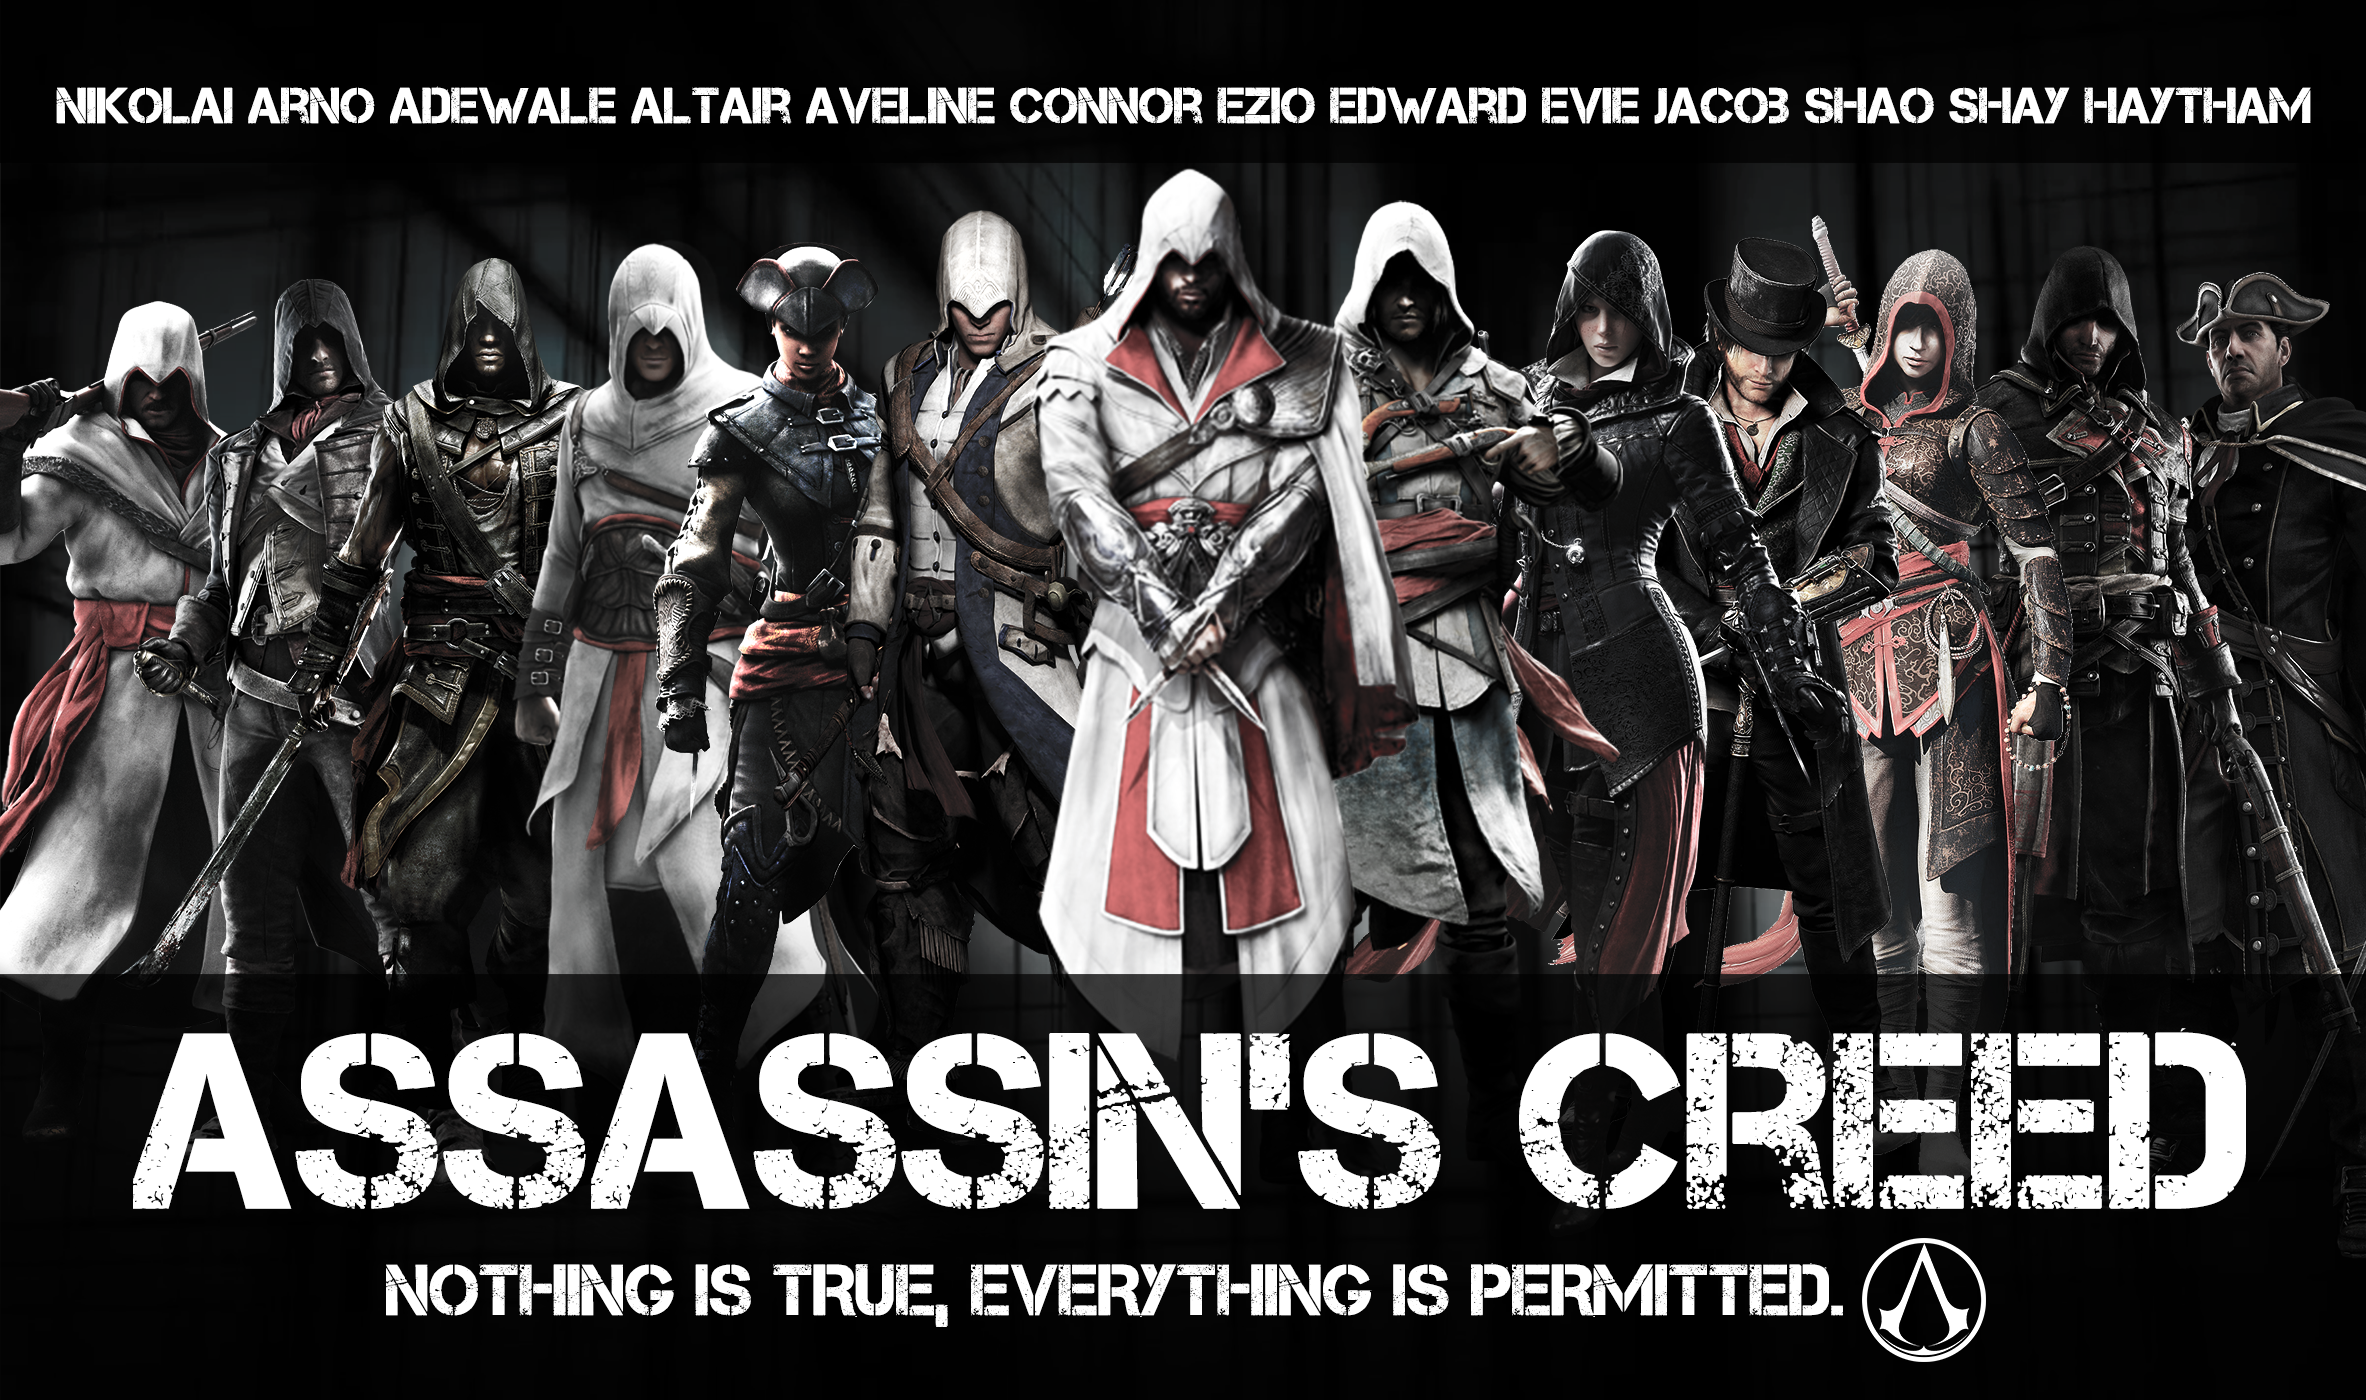 Assassin'-s Creed 4: Black Flag Freedom Cry DLC Release Date ...